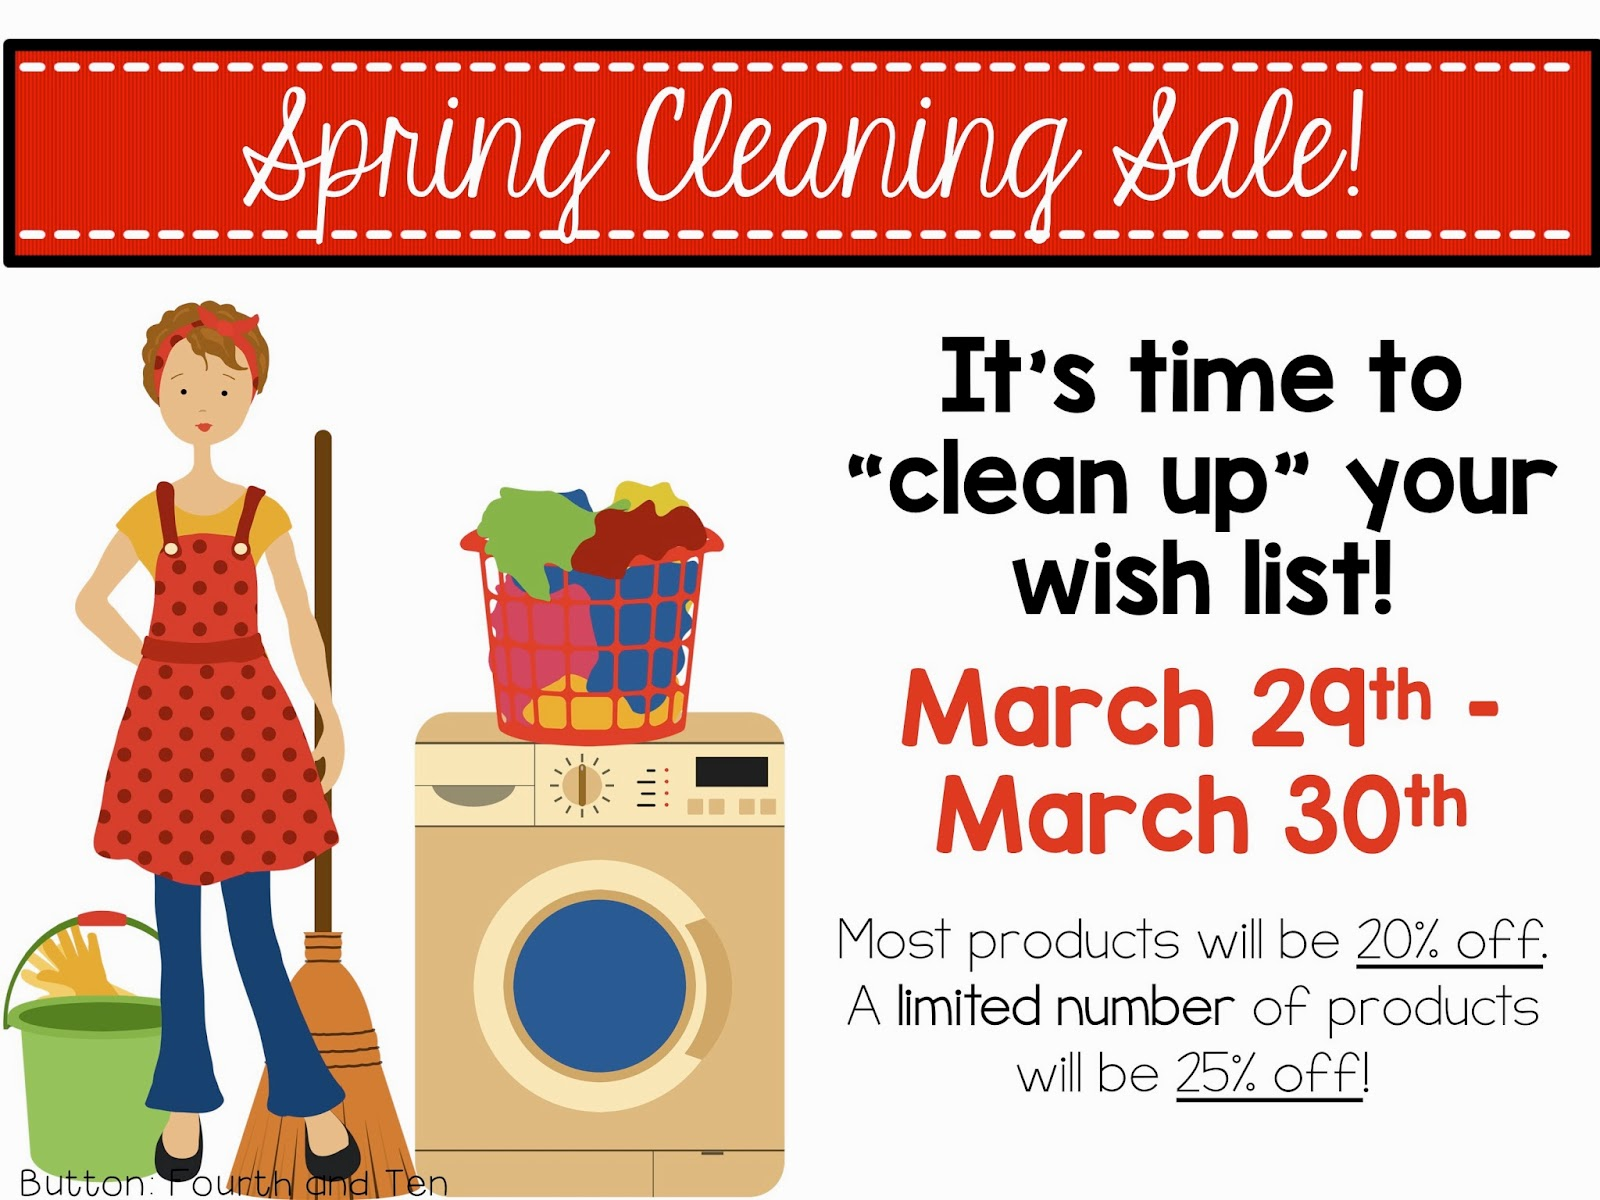 Fourth And Ten Spring Cleaning Sale I Cp Capsule Obat Jantung Herbal Im Just Popping By Today To Let You Know That Having A Little